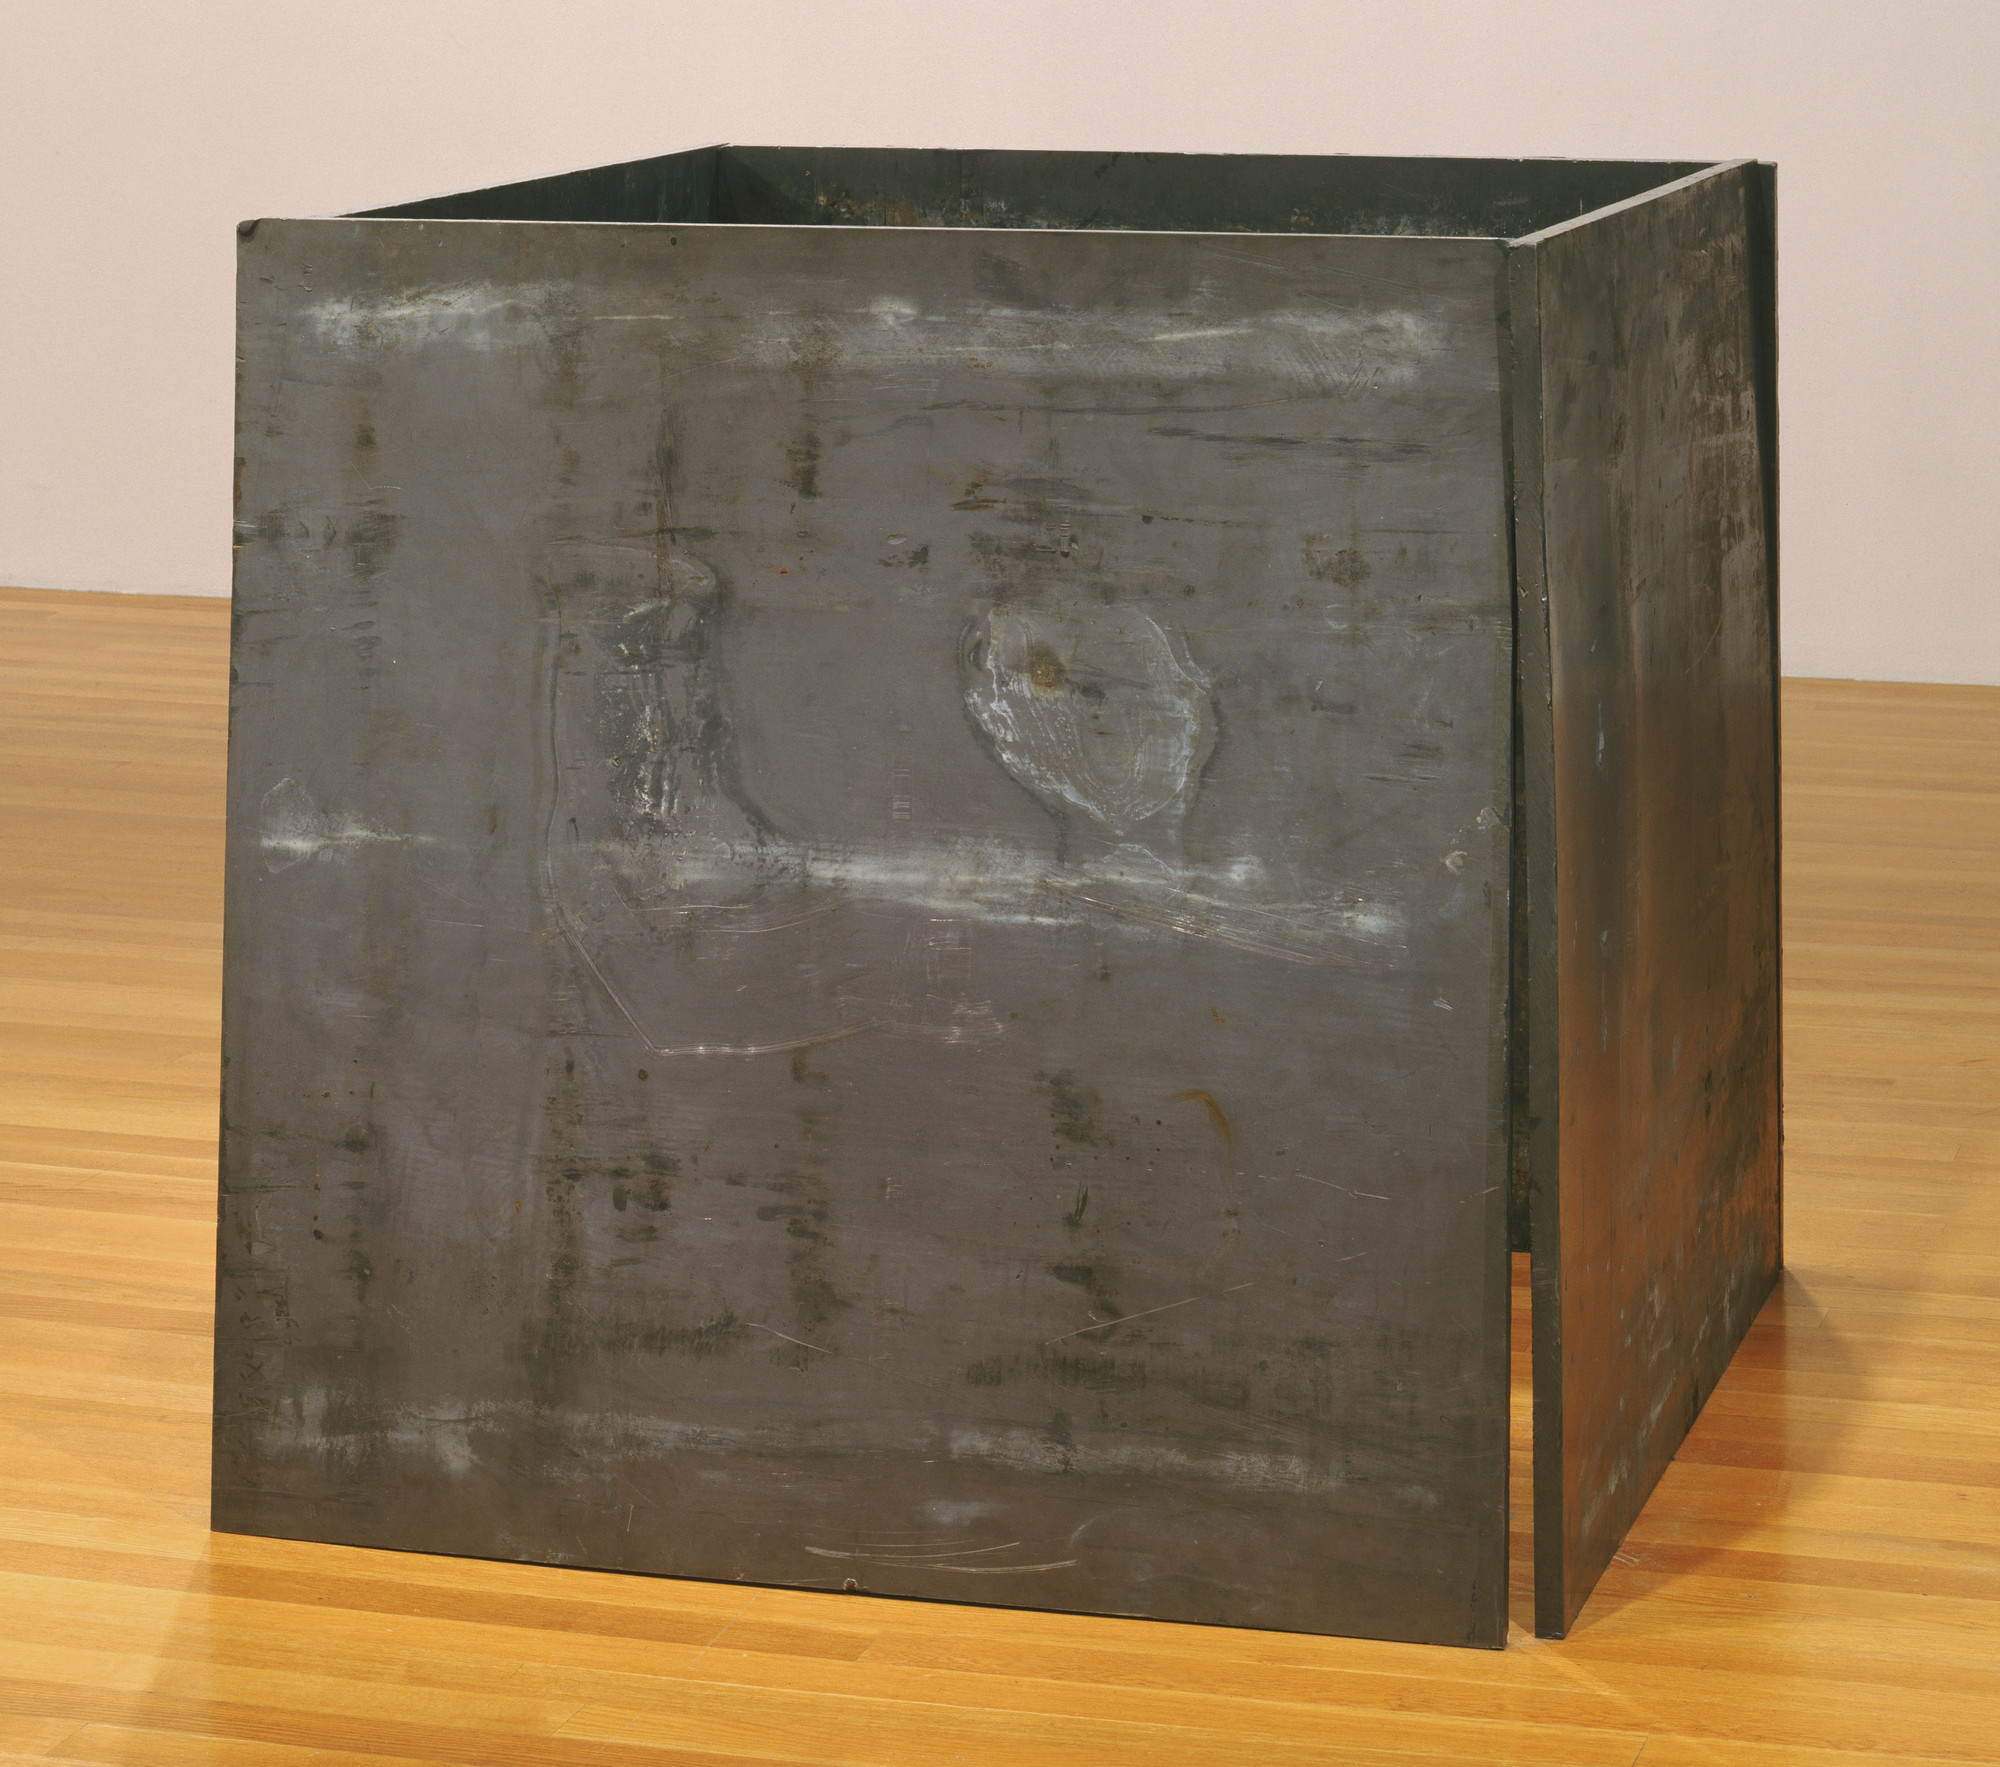 Richard Serra. One Ton Prop (House of Cards). 1969 (refabricated 1986)